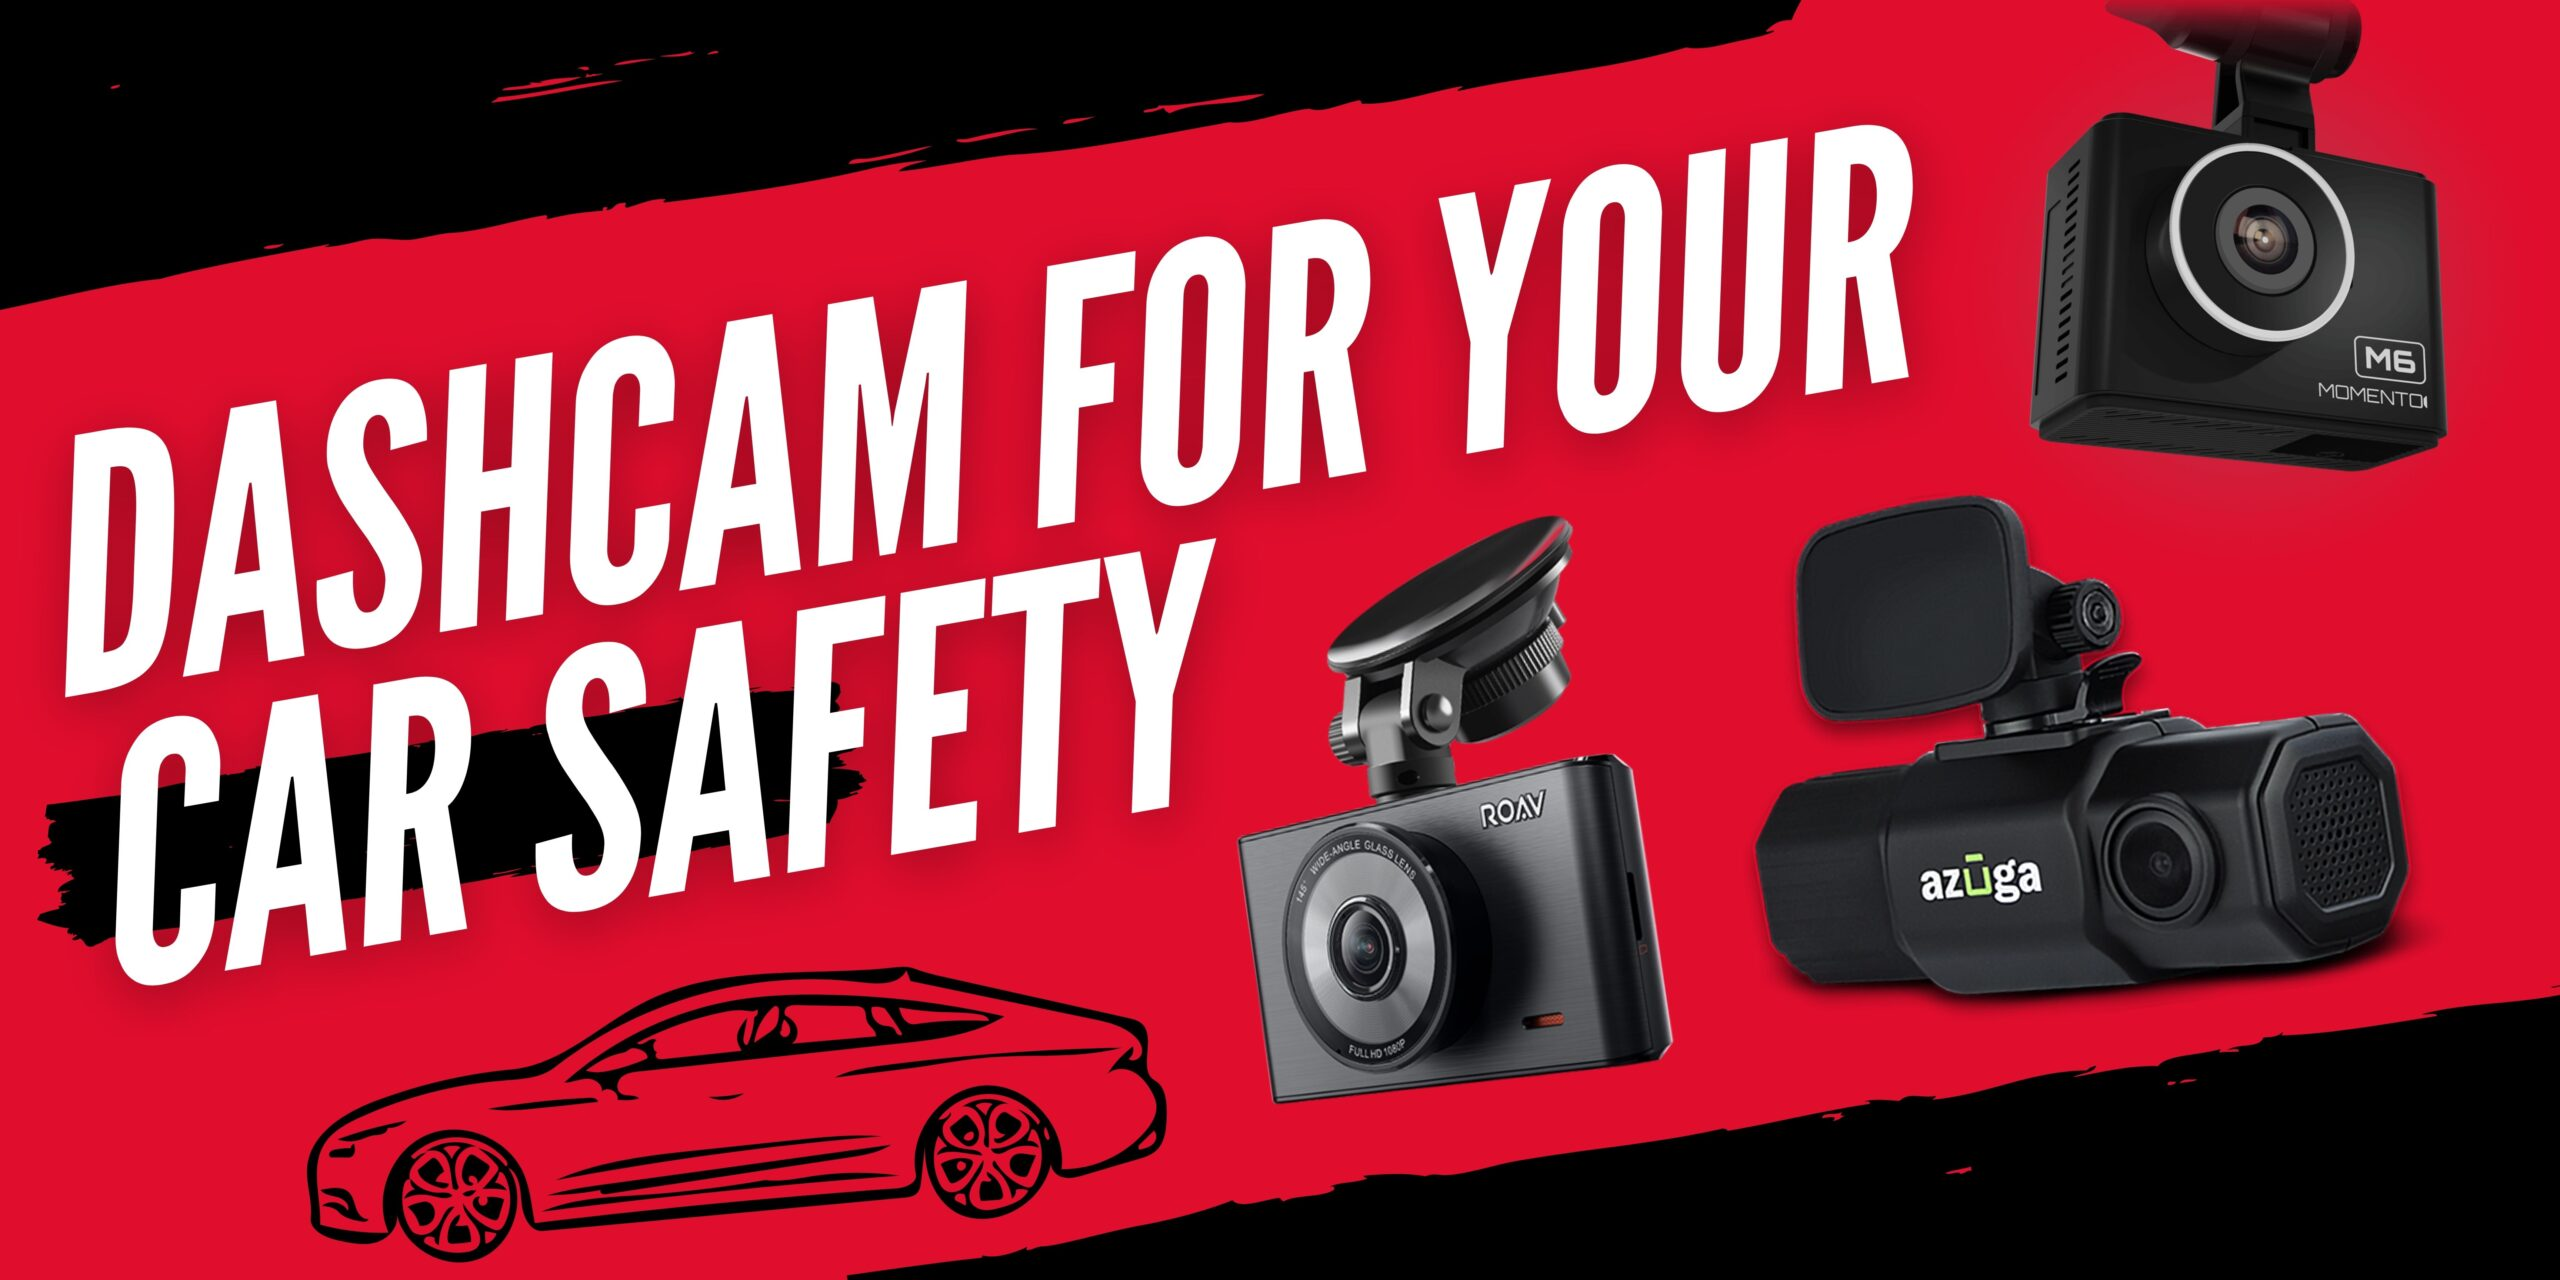 Top 5 Dash Cam for your Car Safety